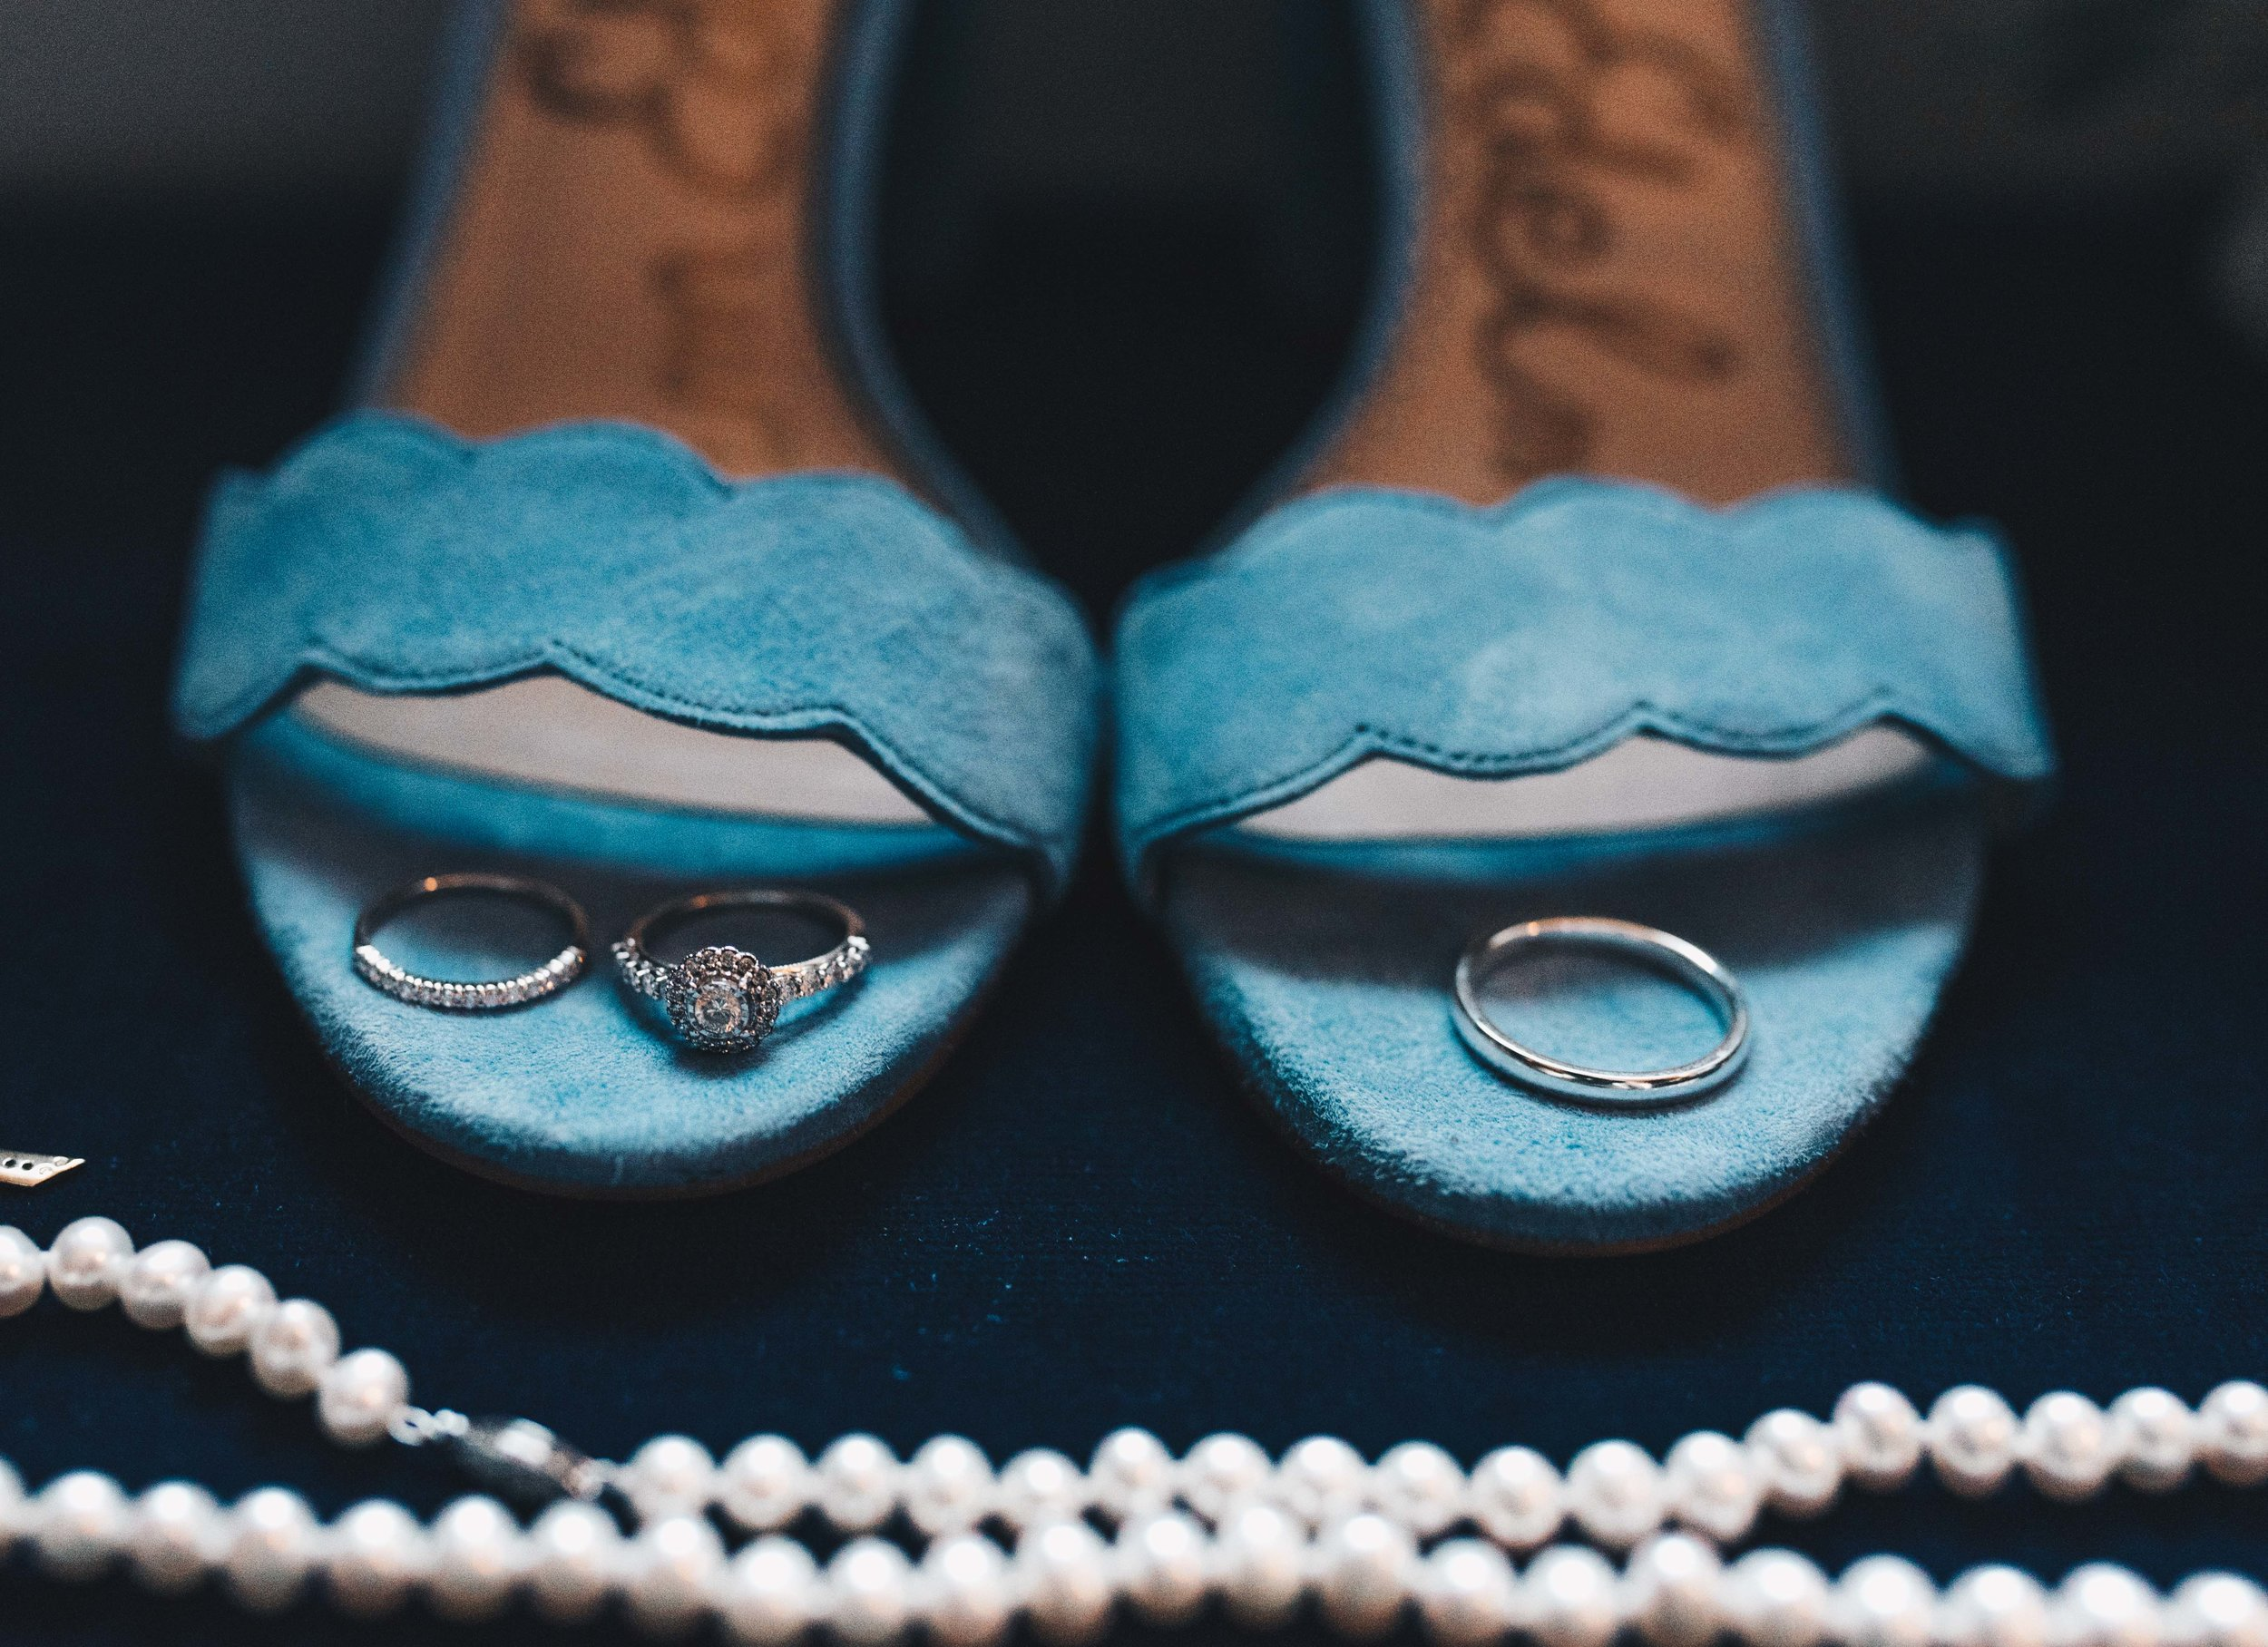 Detail Photos, Detail Bridal Photos, Getting Ready Photos, Wedding Rings, Wedding Shoes